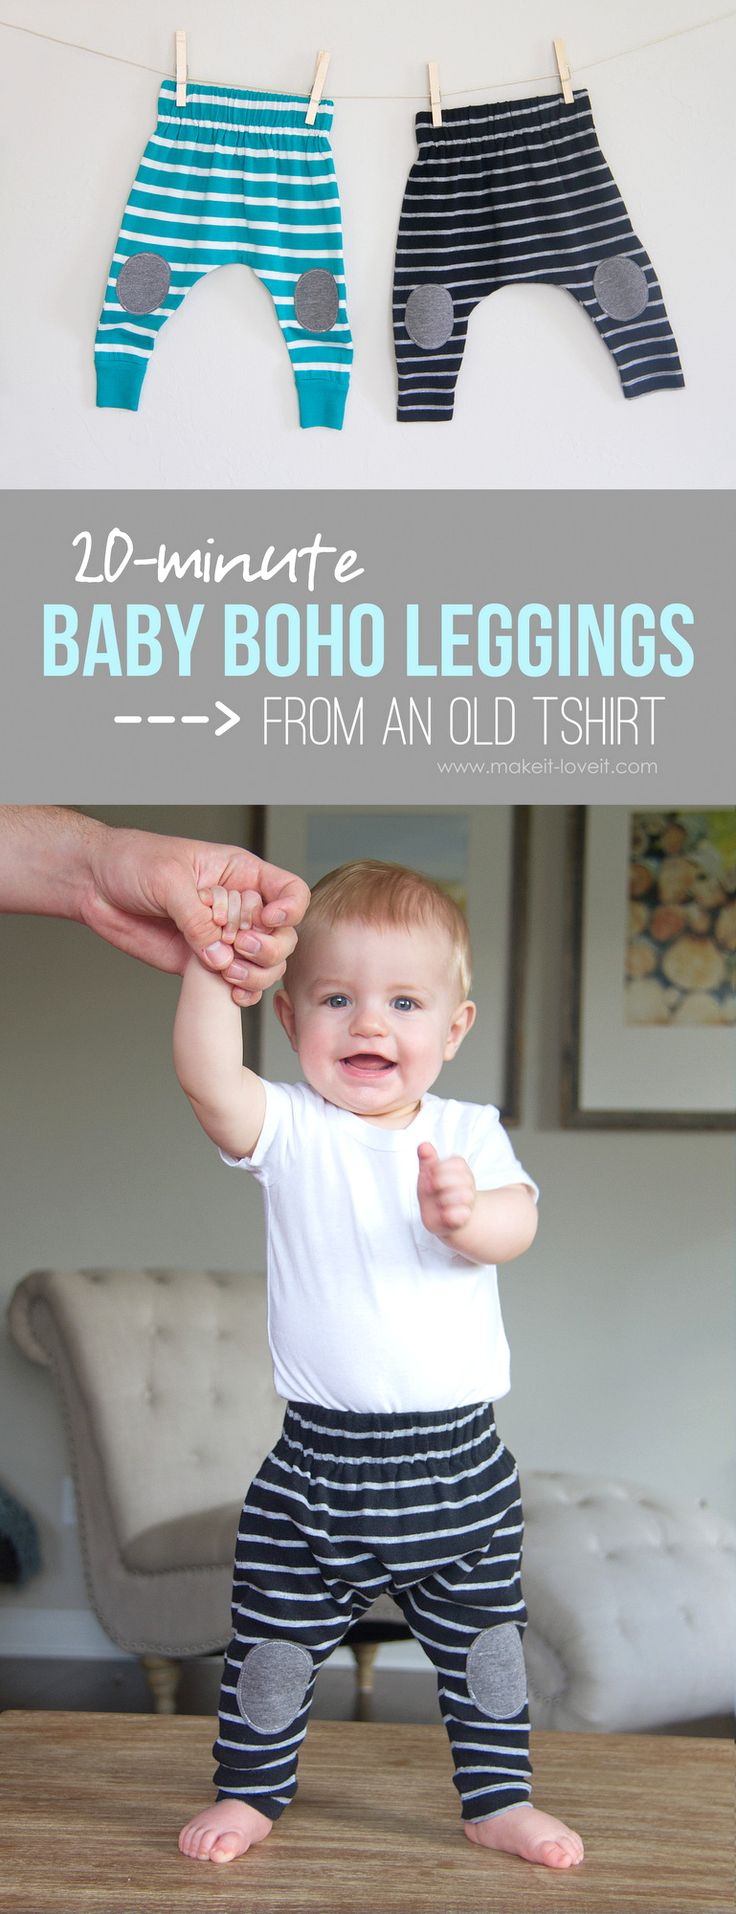 Bildanleitung für Baby-Leggings aus einem alten T-Shirt | via Make It and Love It